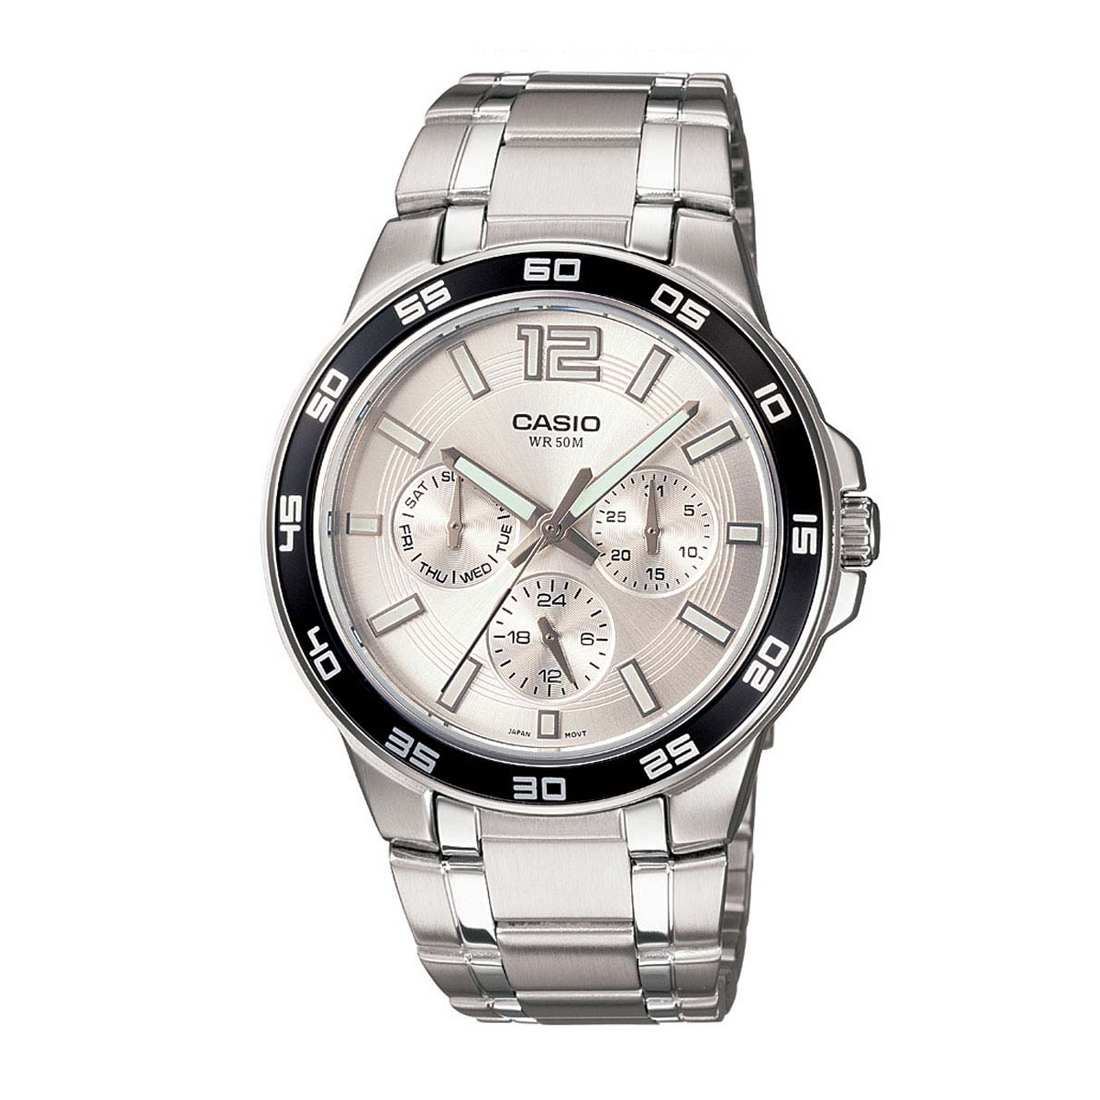 casio enticer men mtp-1300d-7a1vdf (a484) multi dial men's watch-A484